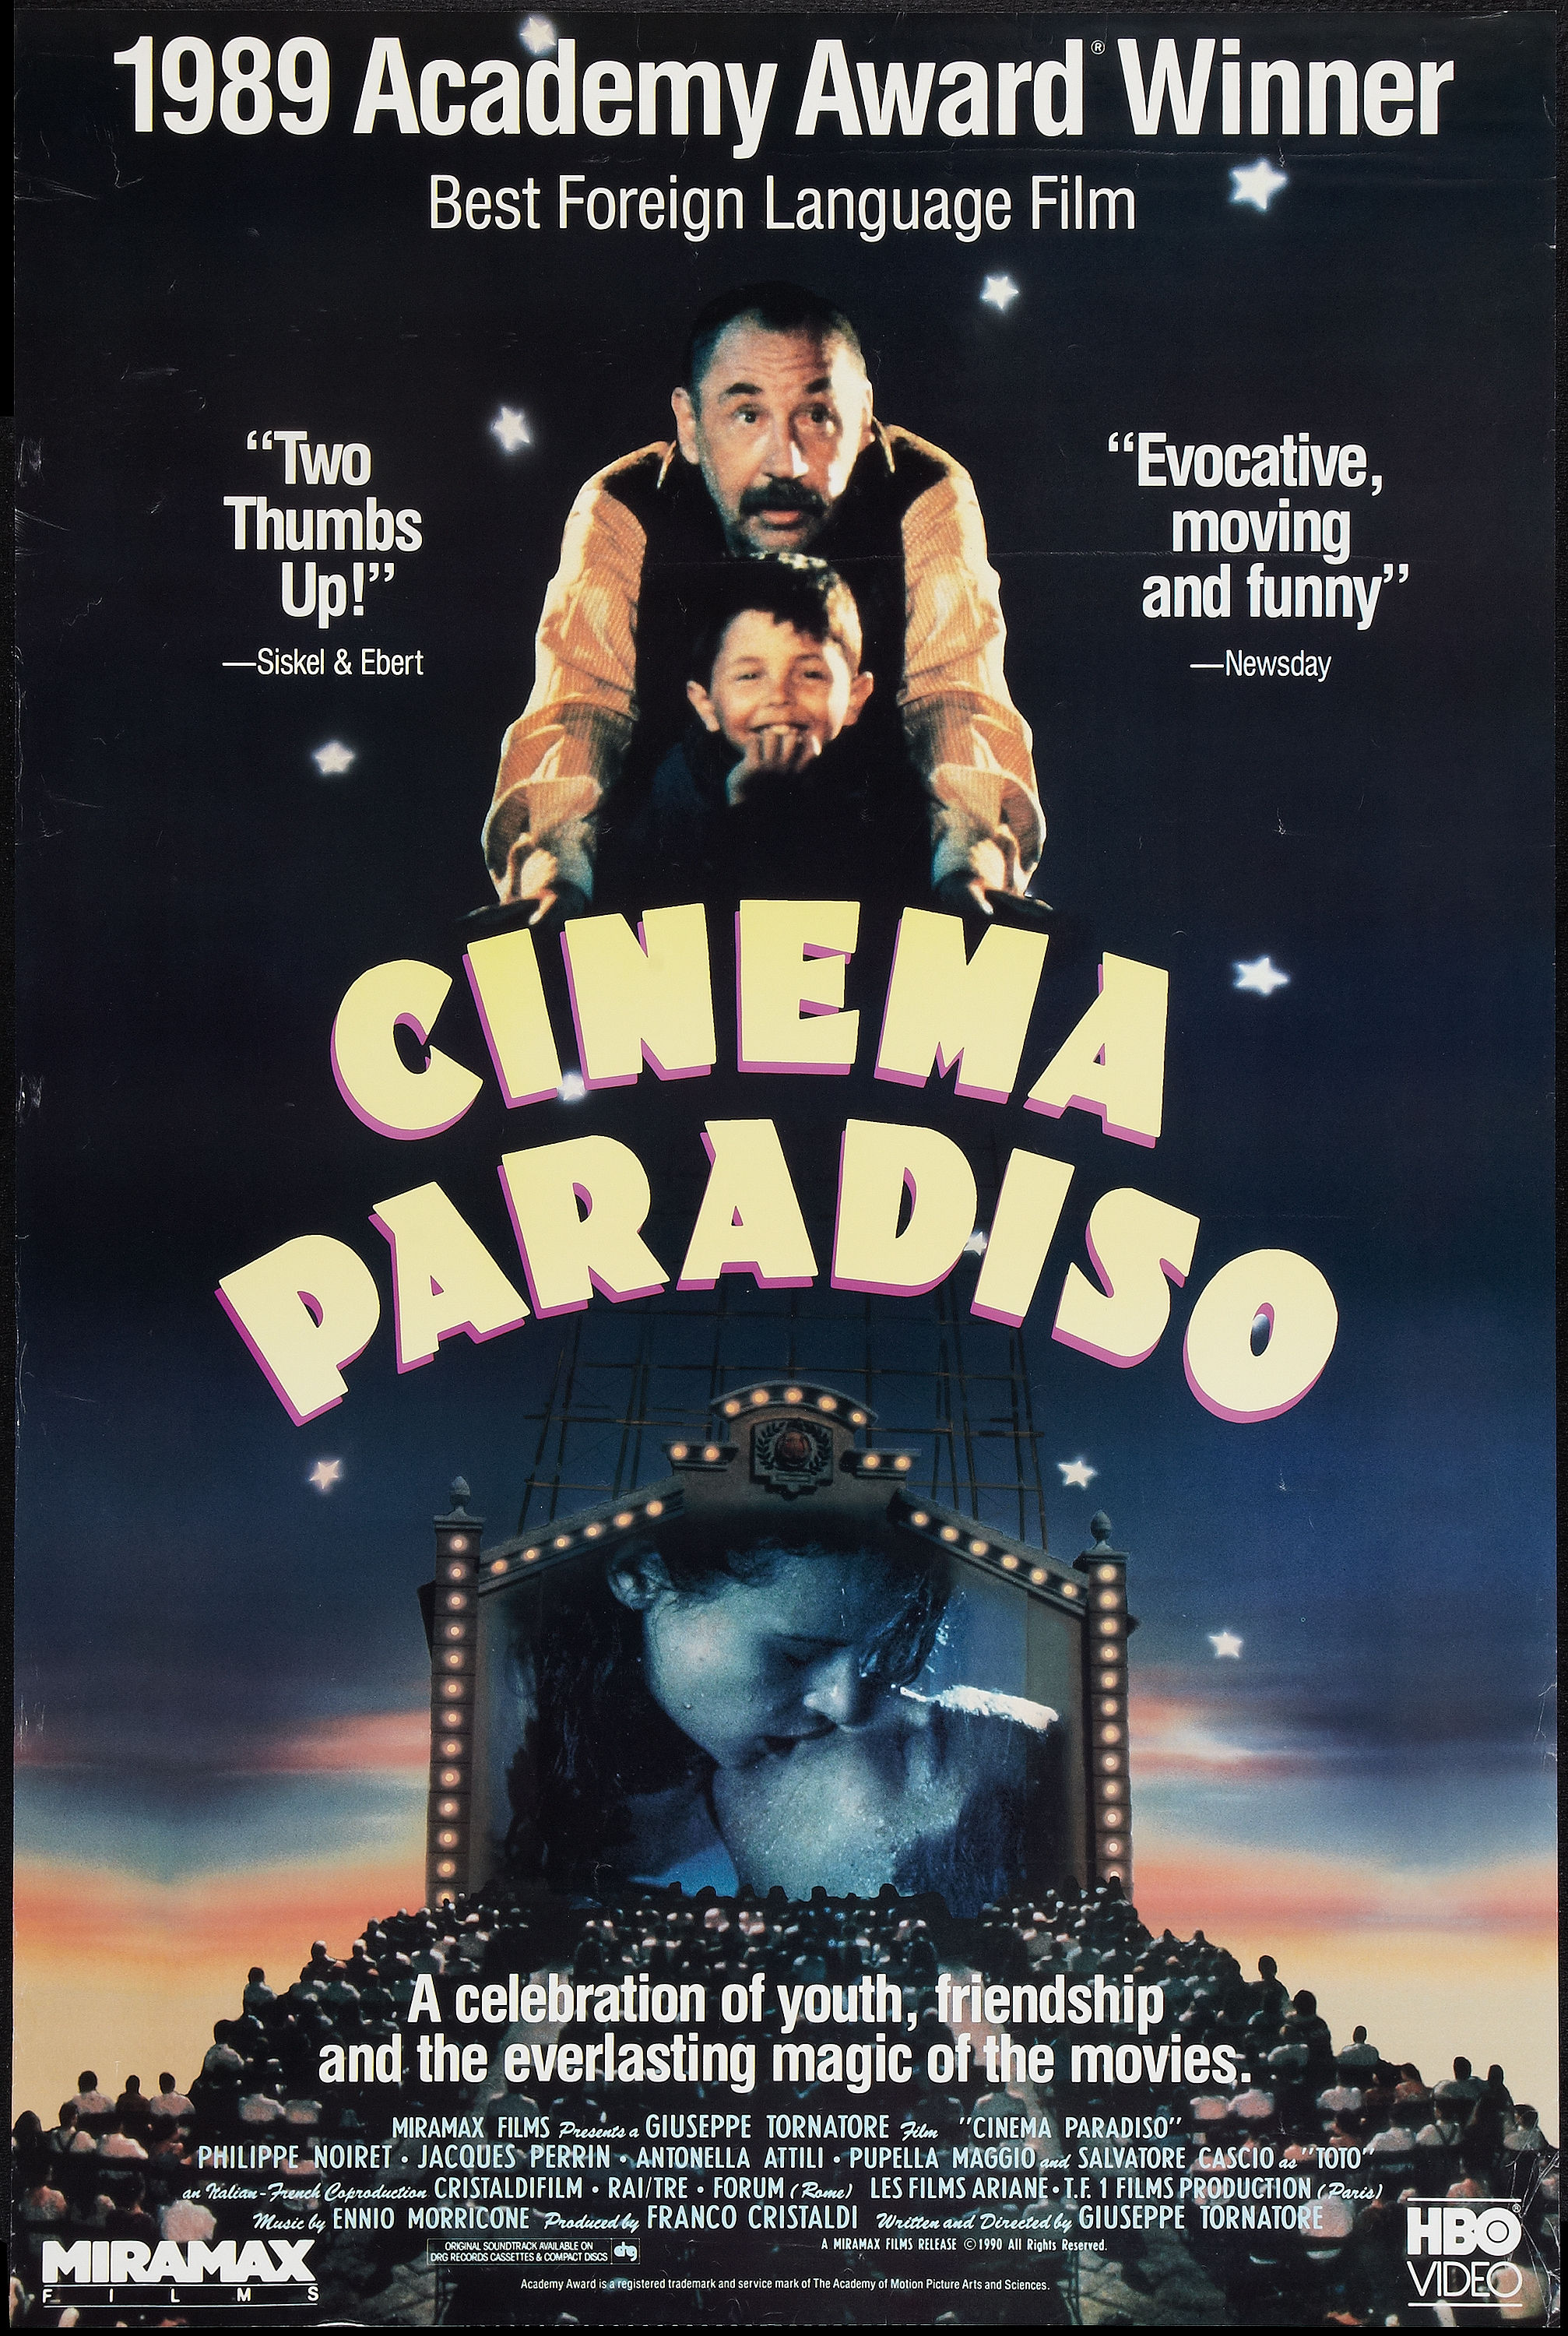 an analysis of the giuseppe tornatores film nuovo cinema paradiso Tornatore, best known for his 1988 cinema paradiso, which took home the oscar for best foreign language film, was accused by former tv starlet miriana trevisan of fondling and kissing her in his office 20 years ago.